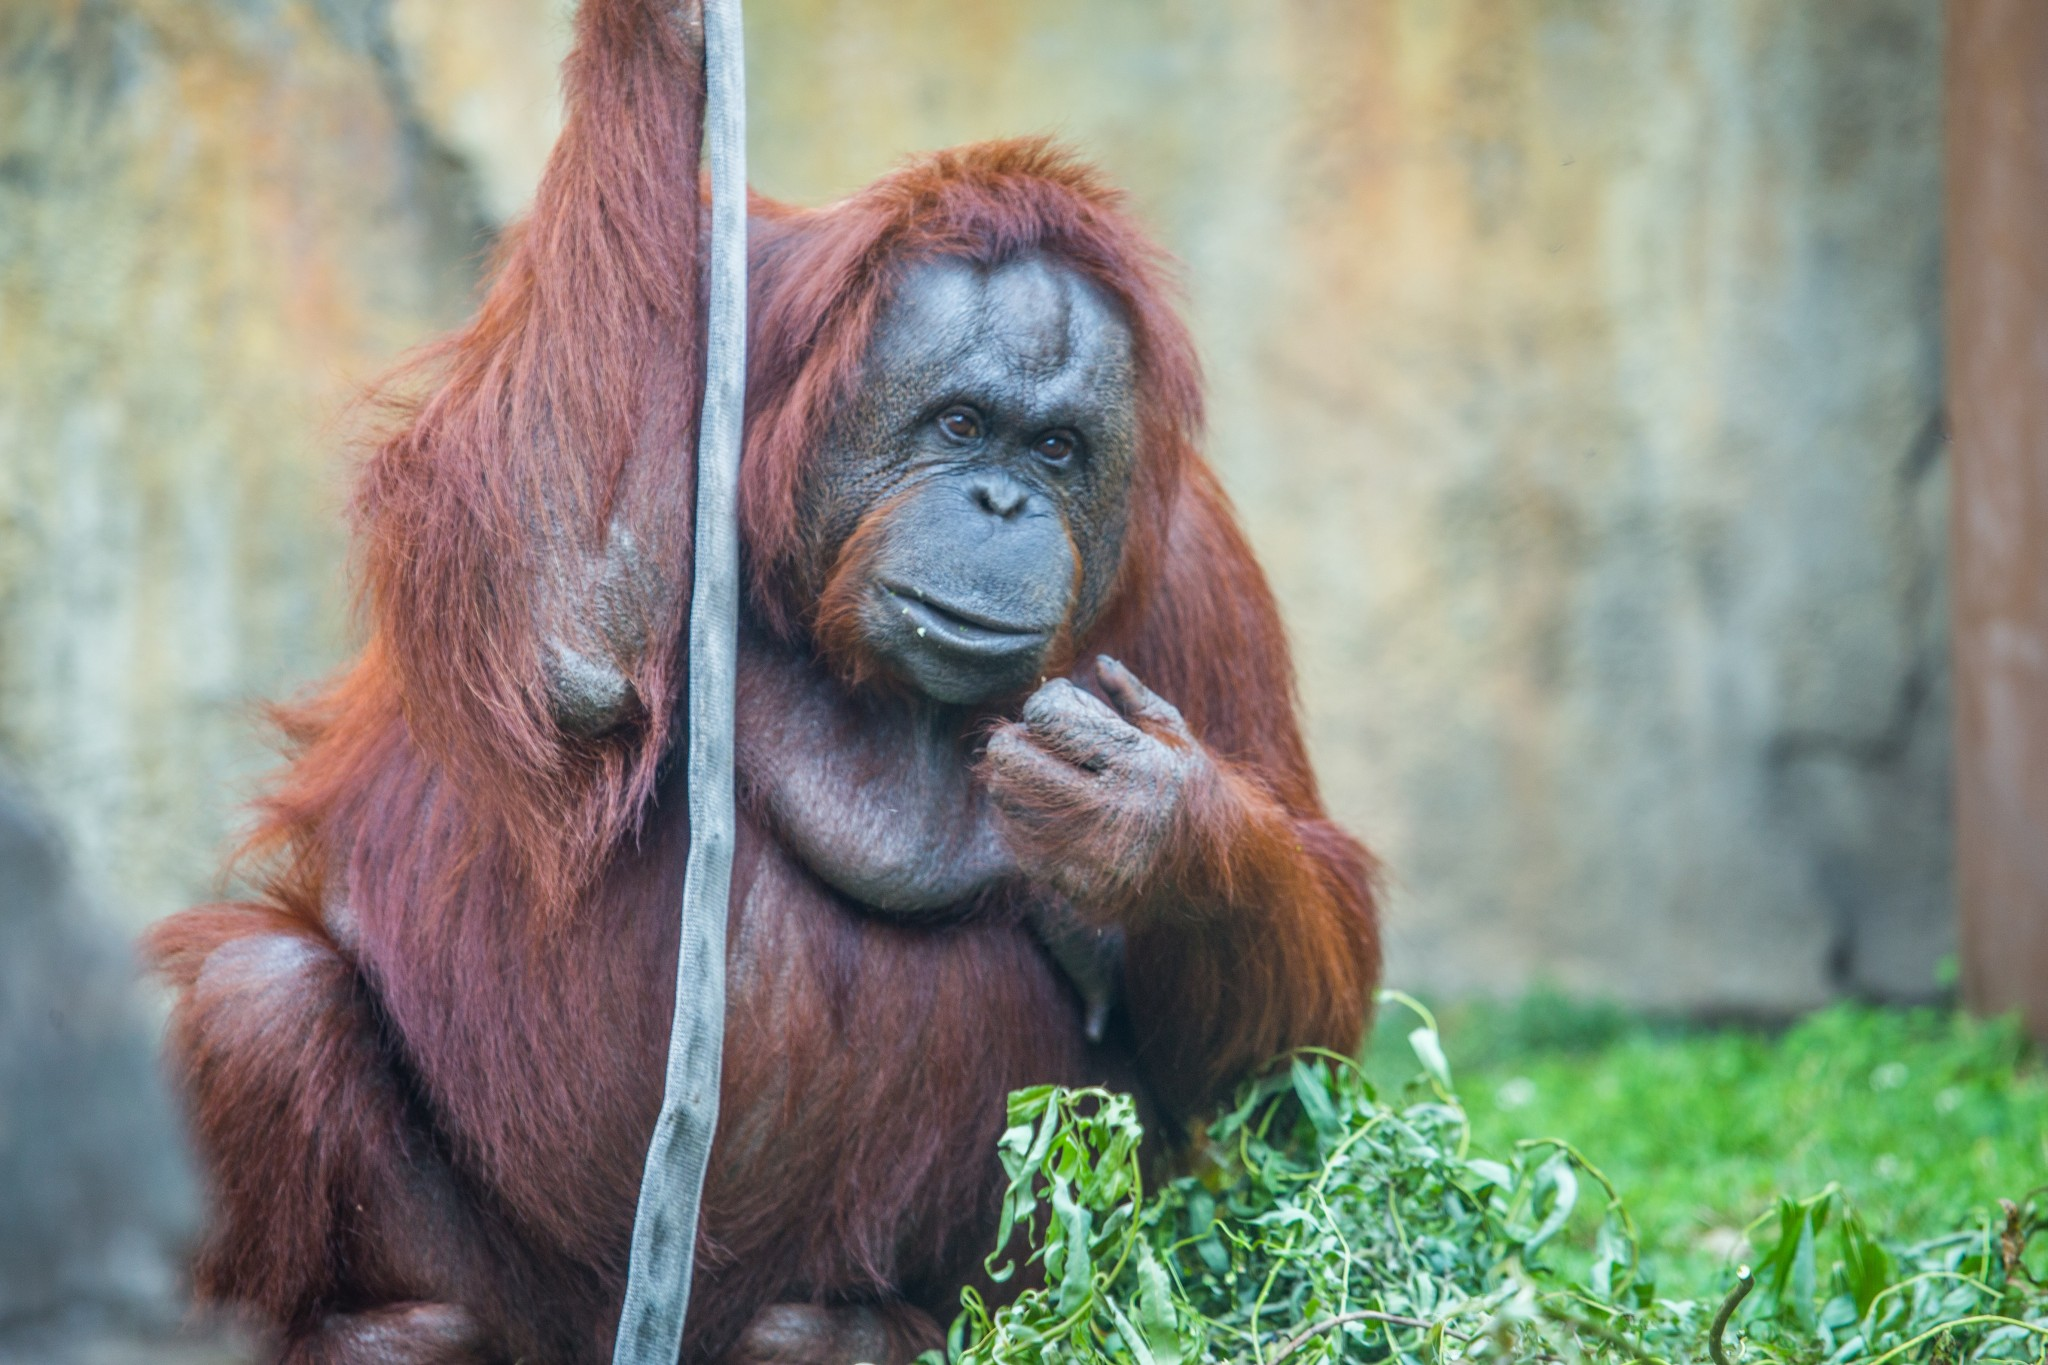 Celebrate Mother's Day at the Toledo Zoo by visiting Yaz, the orangutan (shown) and other animal moms including Kitani, the Gorilla and Renee, the African elephant. (Photo courtesy of the Toledo Zoo)